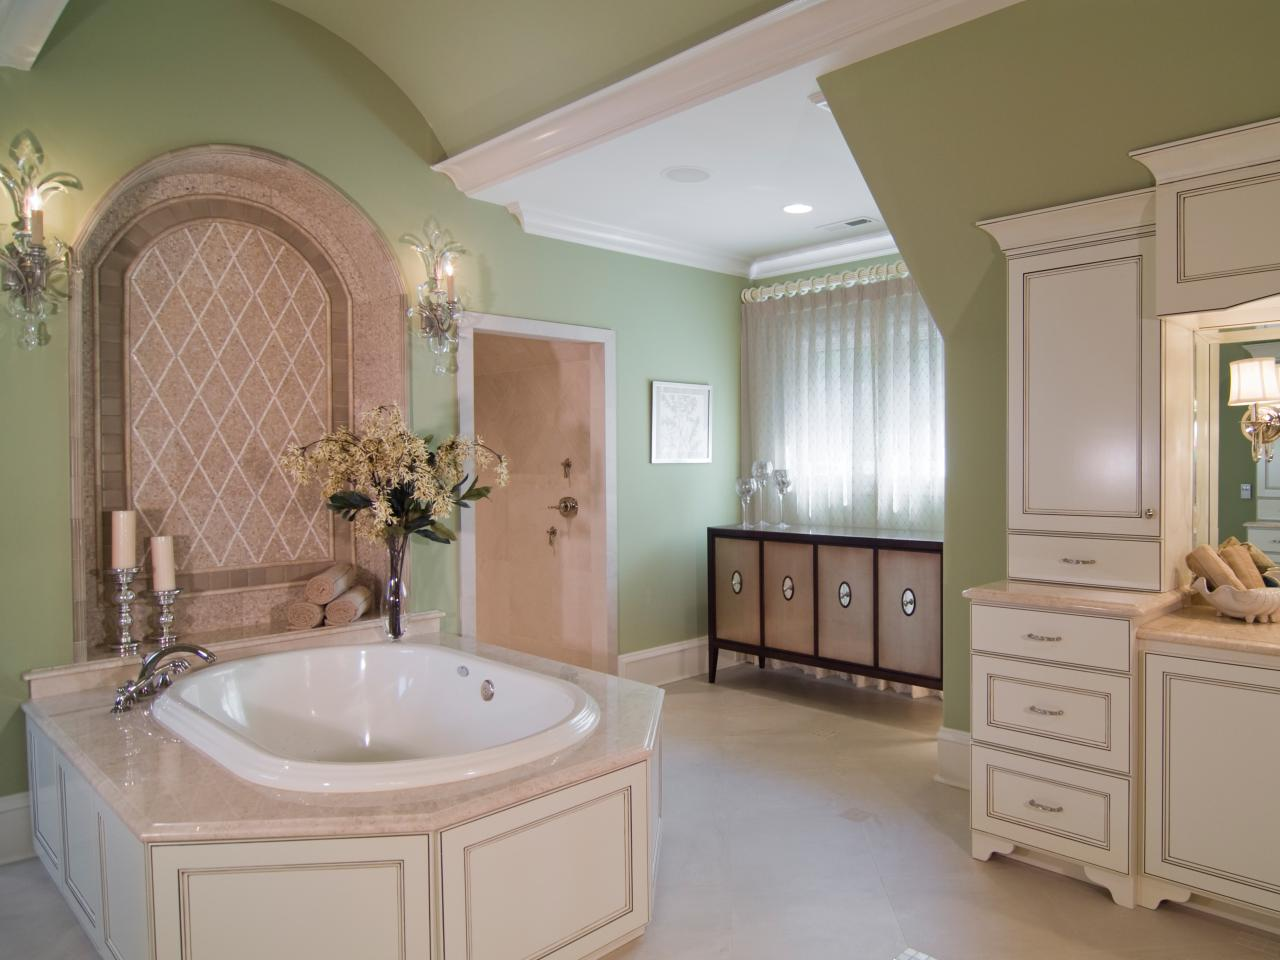 Mint green bathroom amanda swaringen hgtv for Bathroom designs hgtv